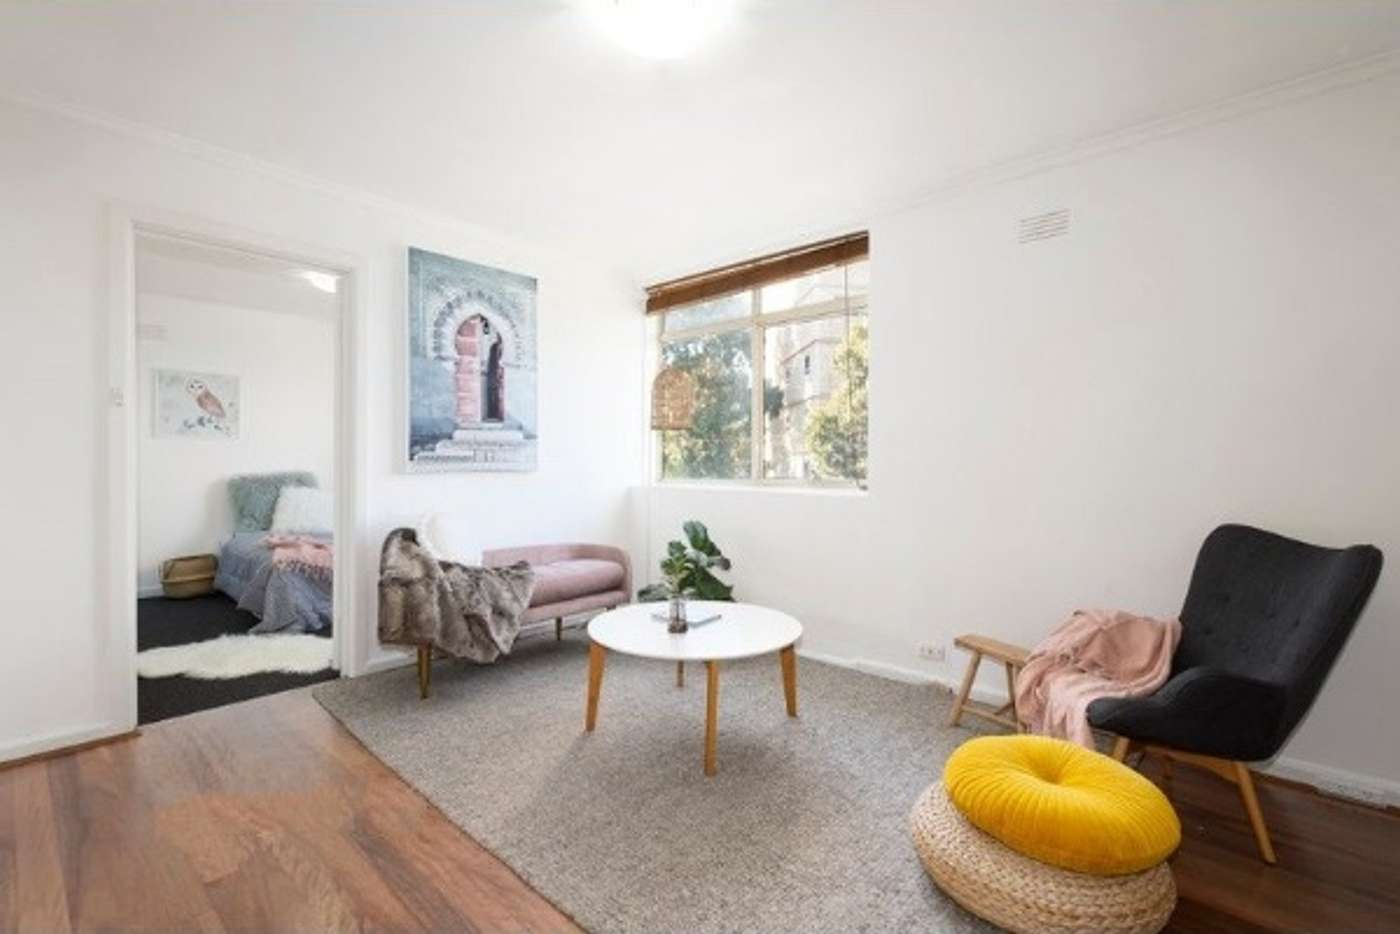 Main view of Homely apartment listing, 6/134 Inkerman Street, St Kilda VIC 3182